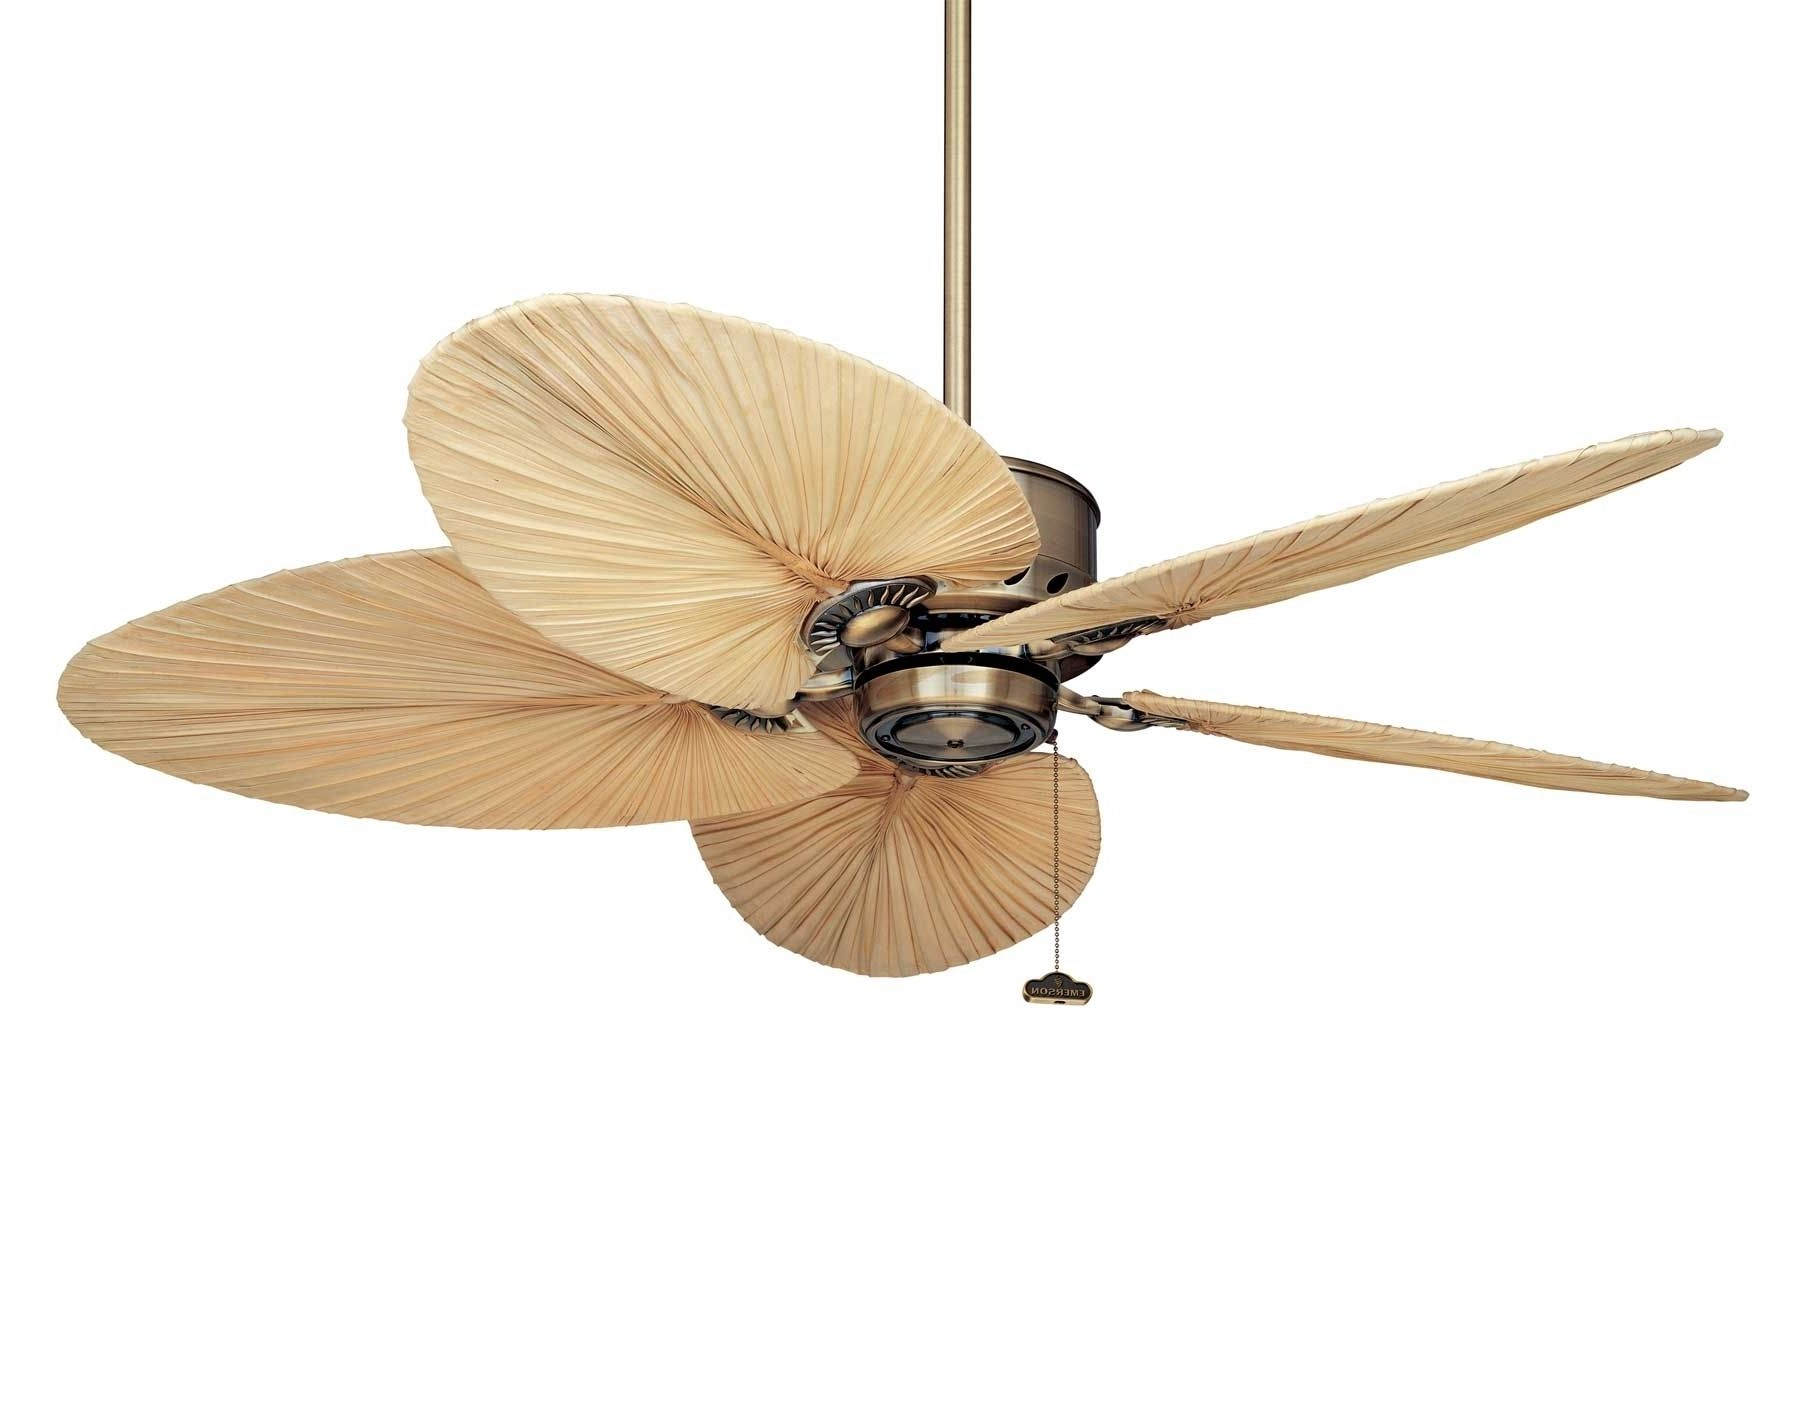 ceiling leaf ideas beach for kit sturdy fans patio also porch ceilings room living outdoor and palm lights gray decoration lig howling zq fan light to sleek xpgkal s